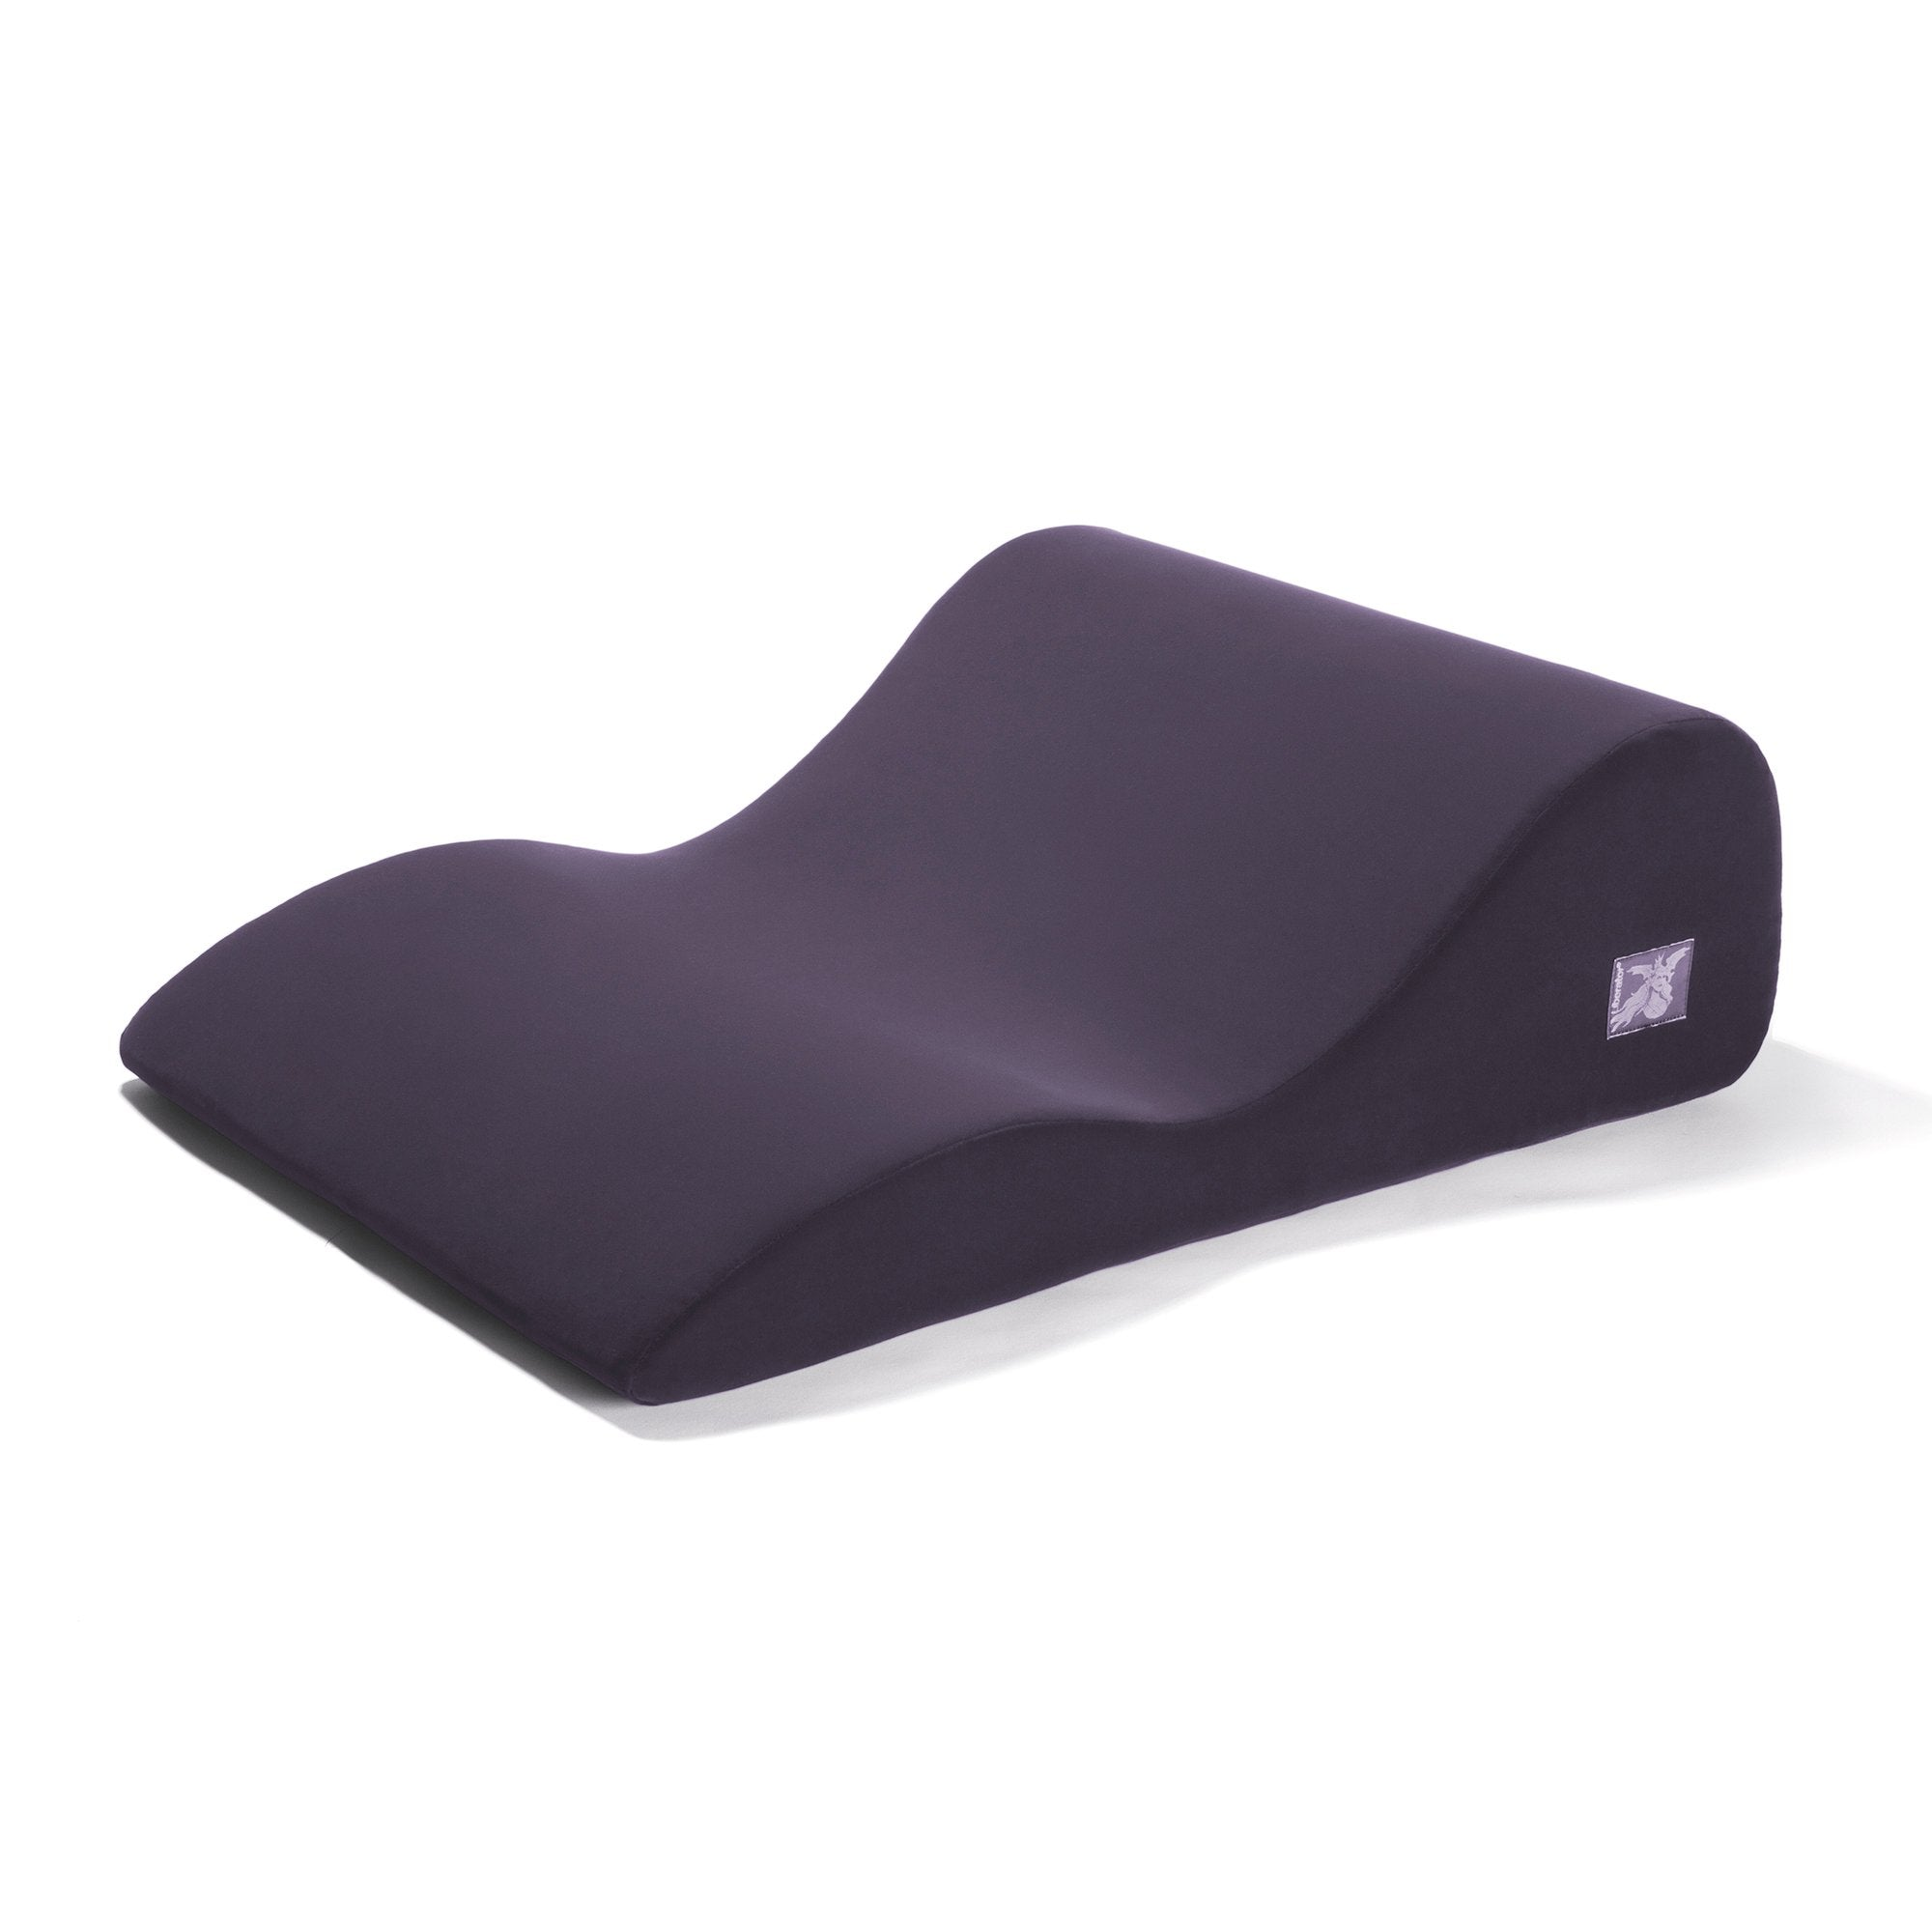 Liberator Hipster Sex Positioning Cushion - Assorted Colors